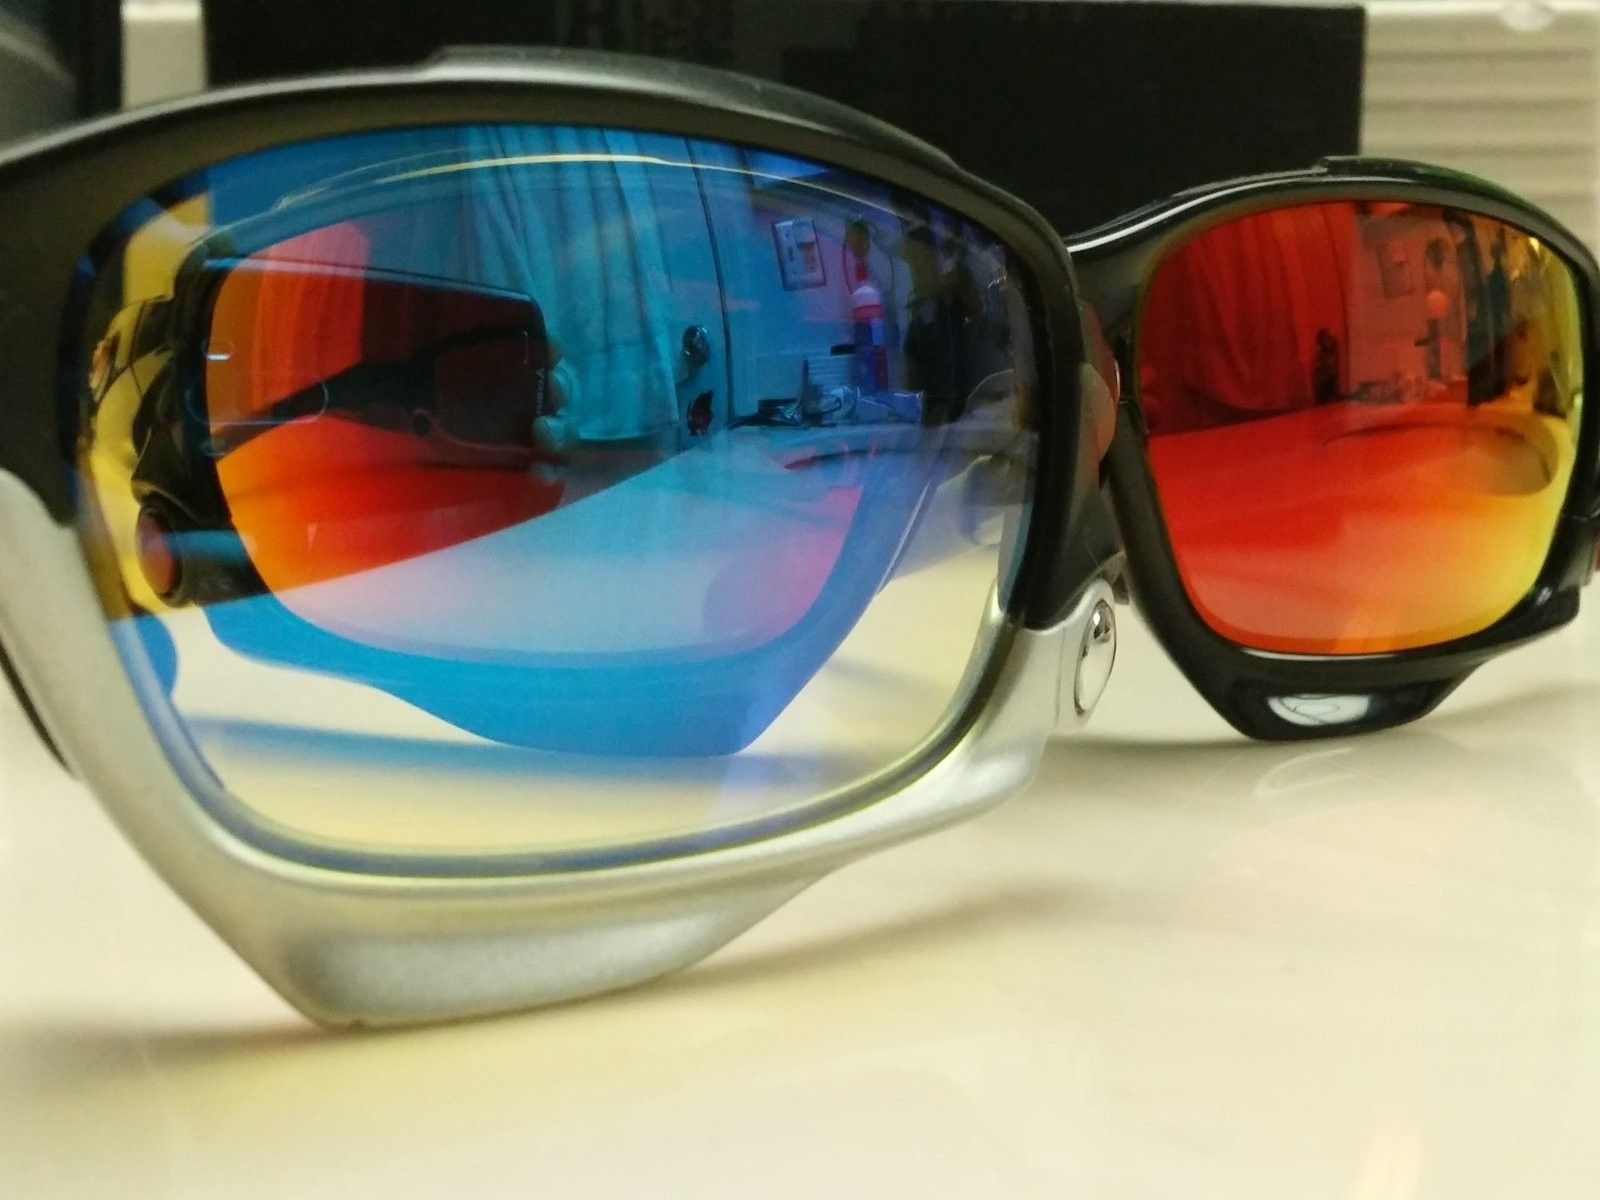 Aftermarket Review: Zero brand replacement lenses. - 20160930_212357.jpg